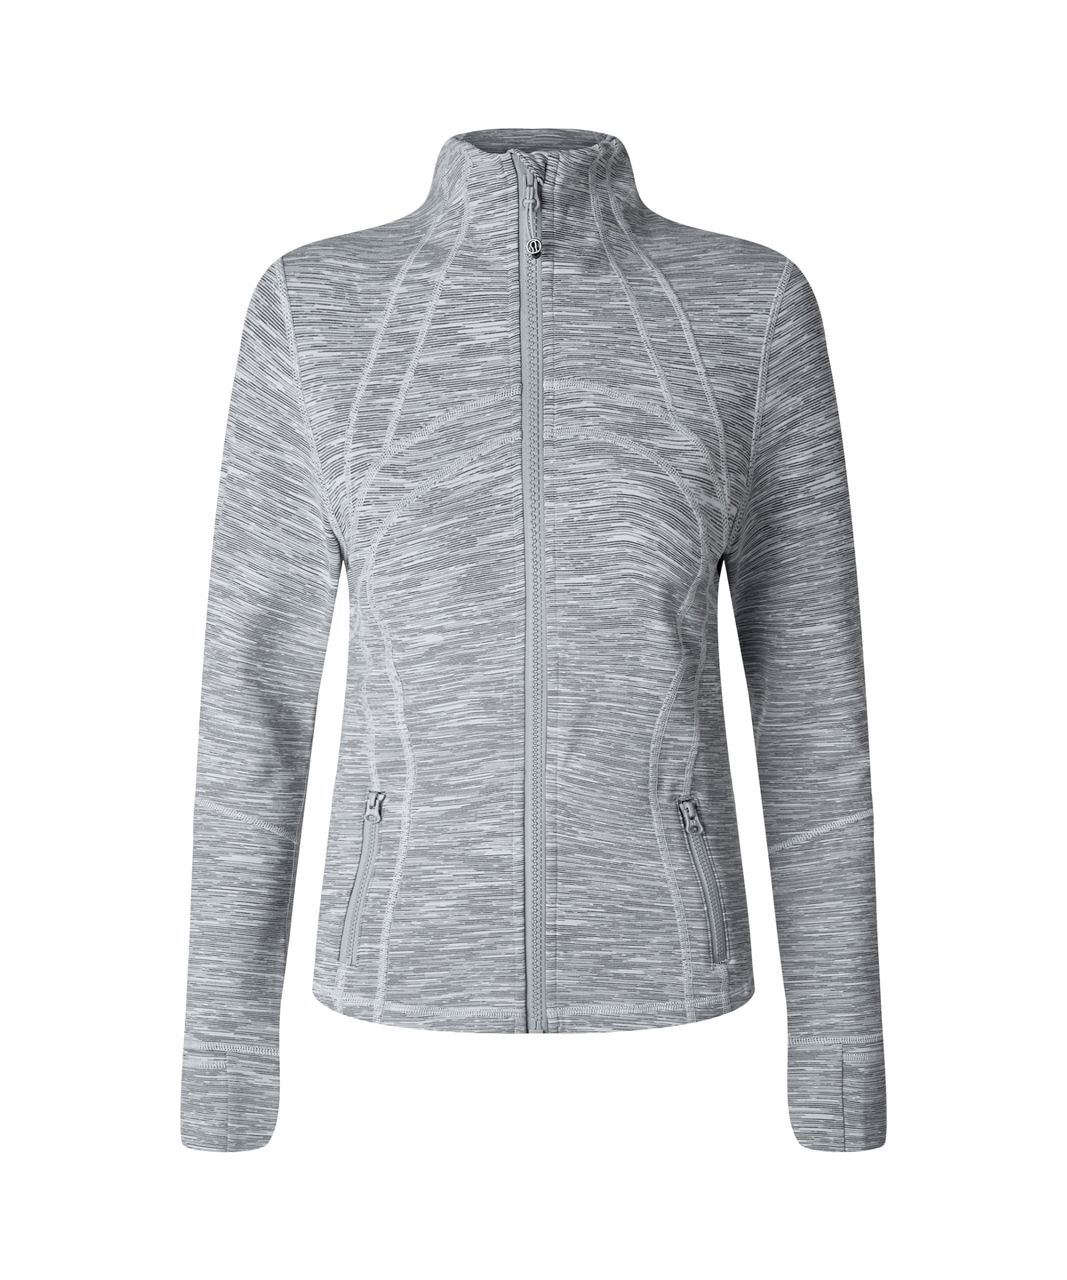 Lululemon Define Jacket - Wee Are From Space Silver Spoon